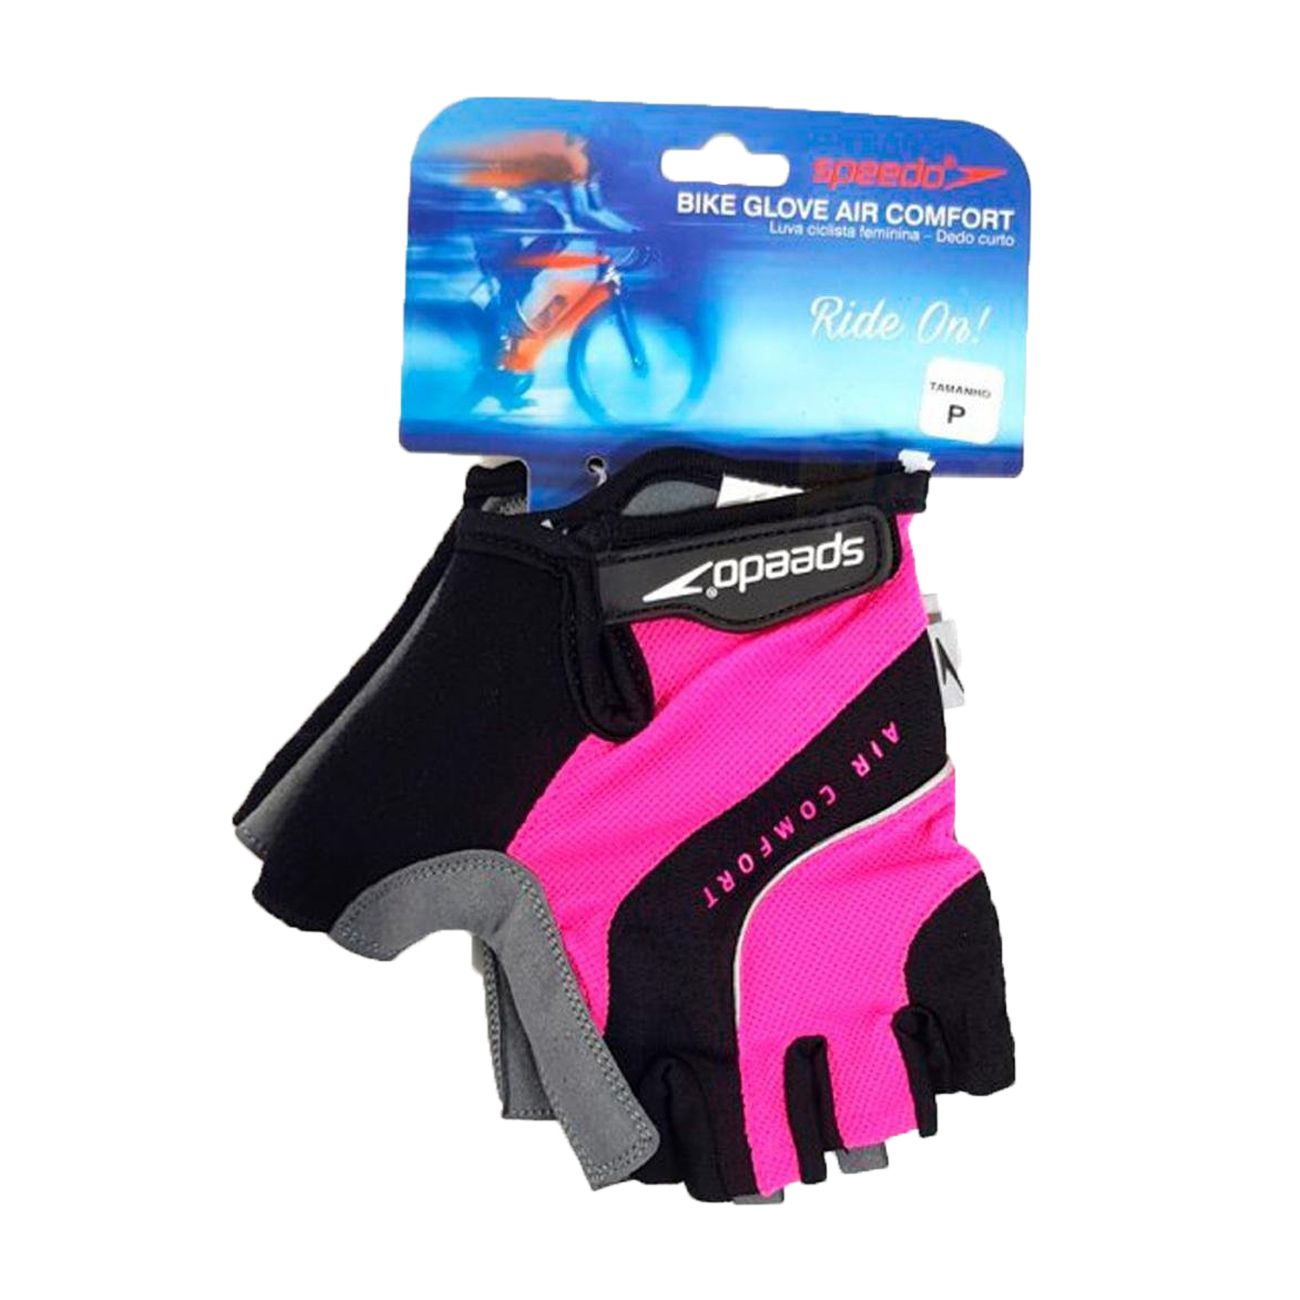 Luva Speedo Bike Glove Air Comfort Rosa E Preto